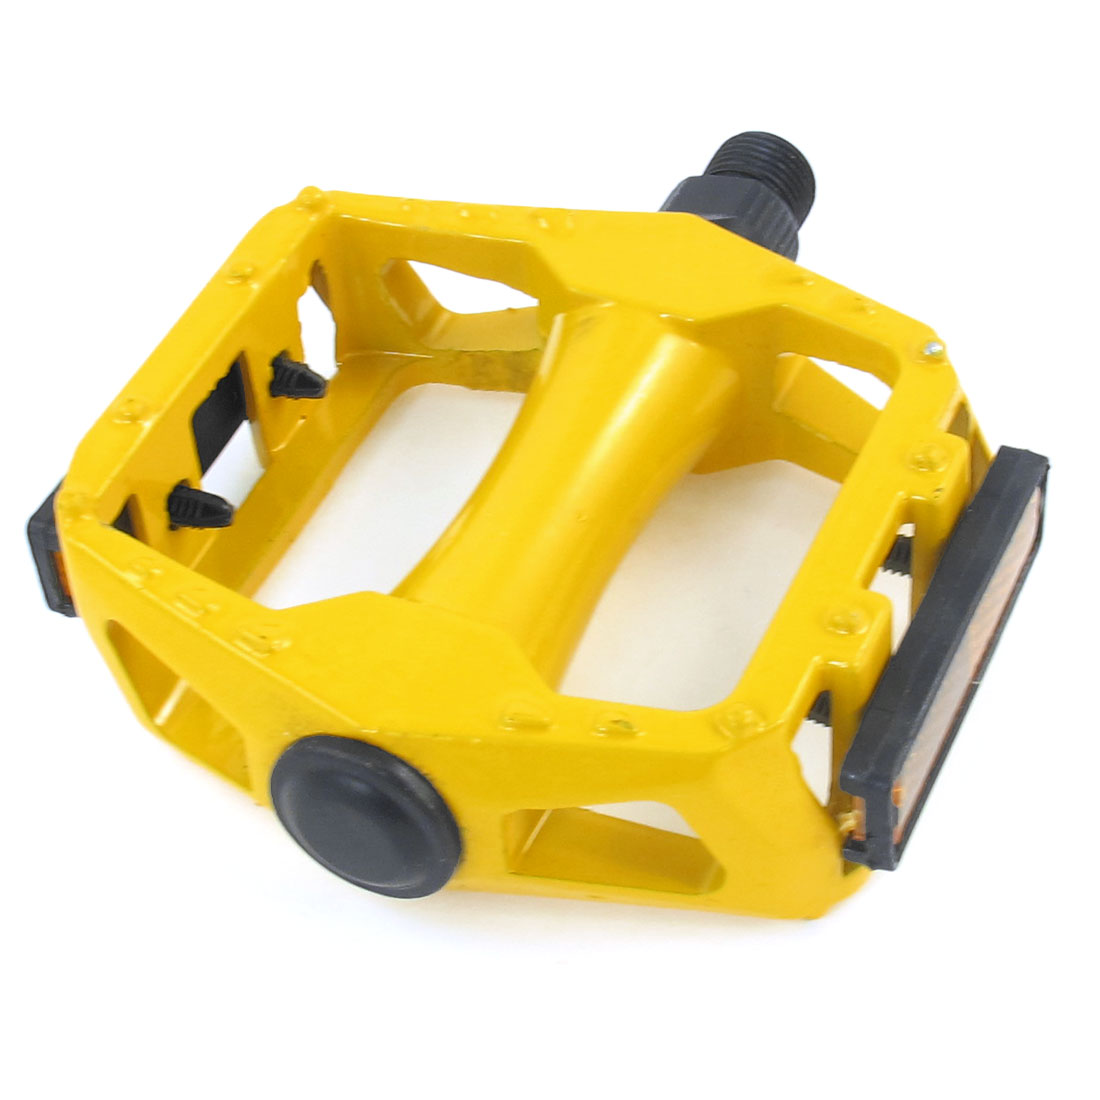 Mountain Road Bike Bicycie Yellow Metal Platform Pedal Part